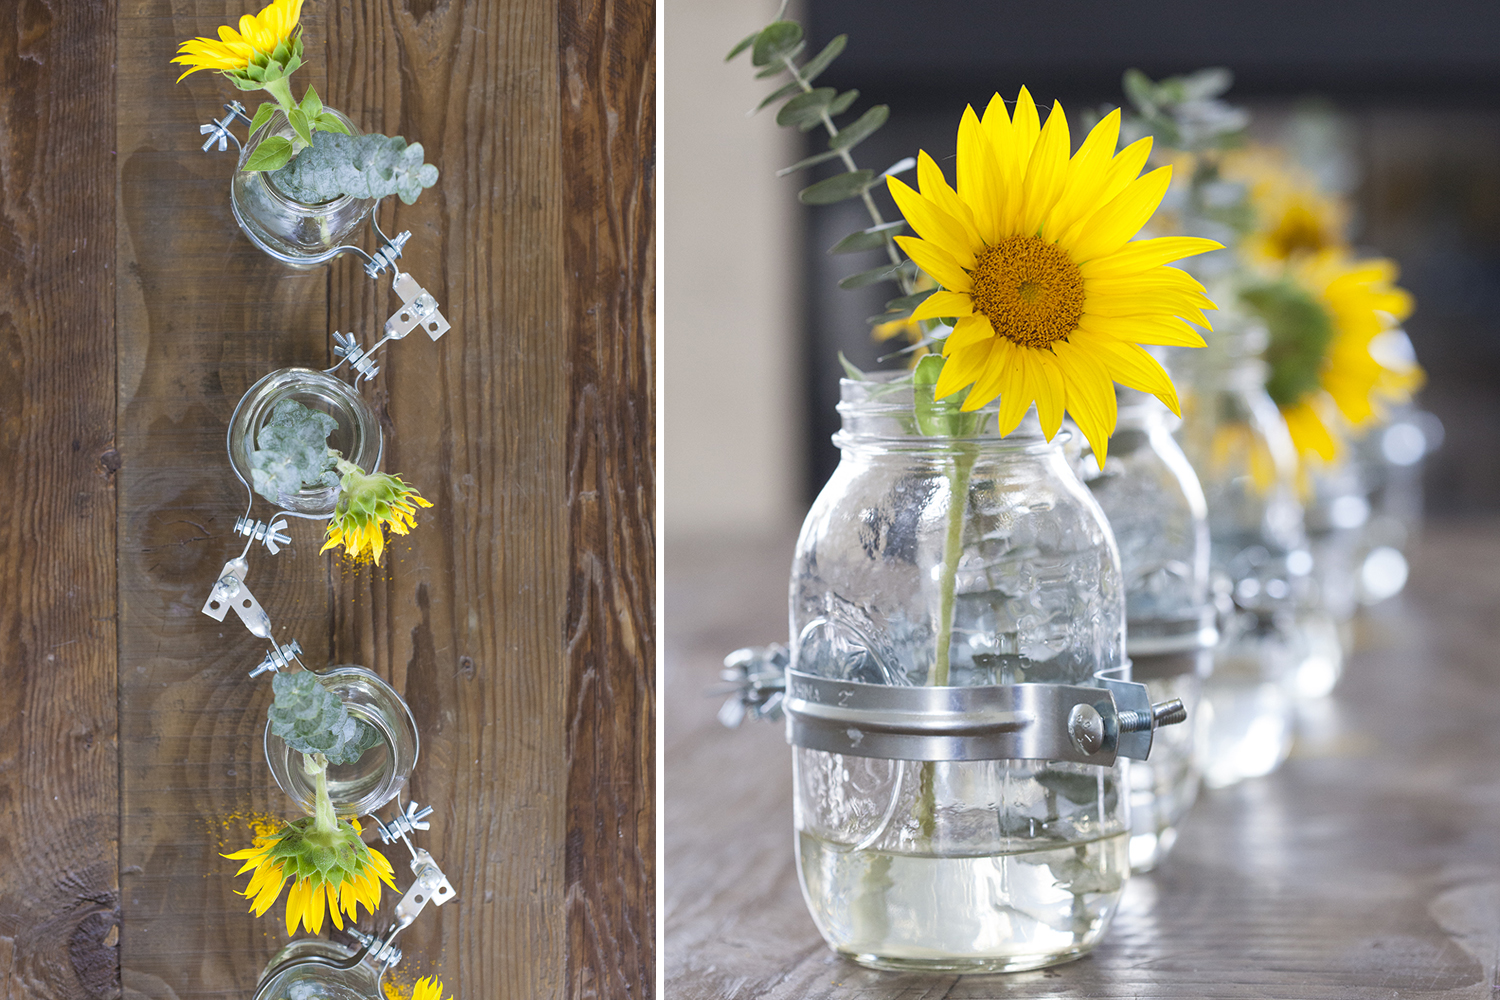 Flower Vase Ideas For Decorating Diy Clamped Mason Jar Vase Centerpiece